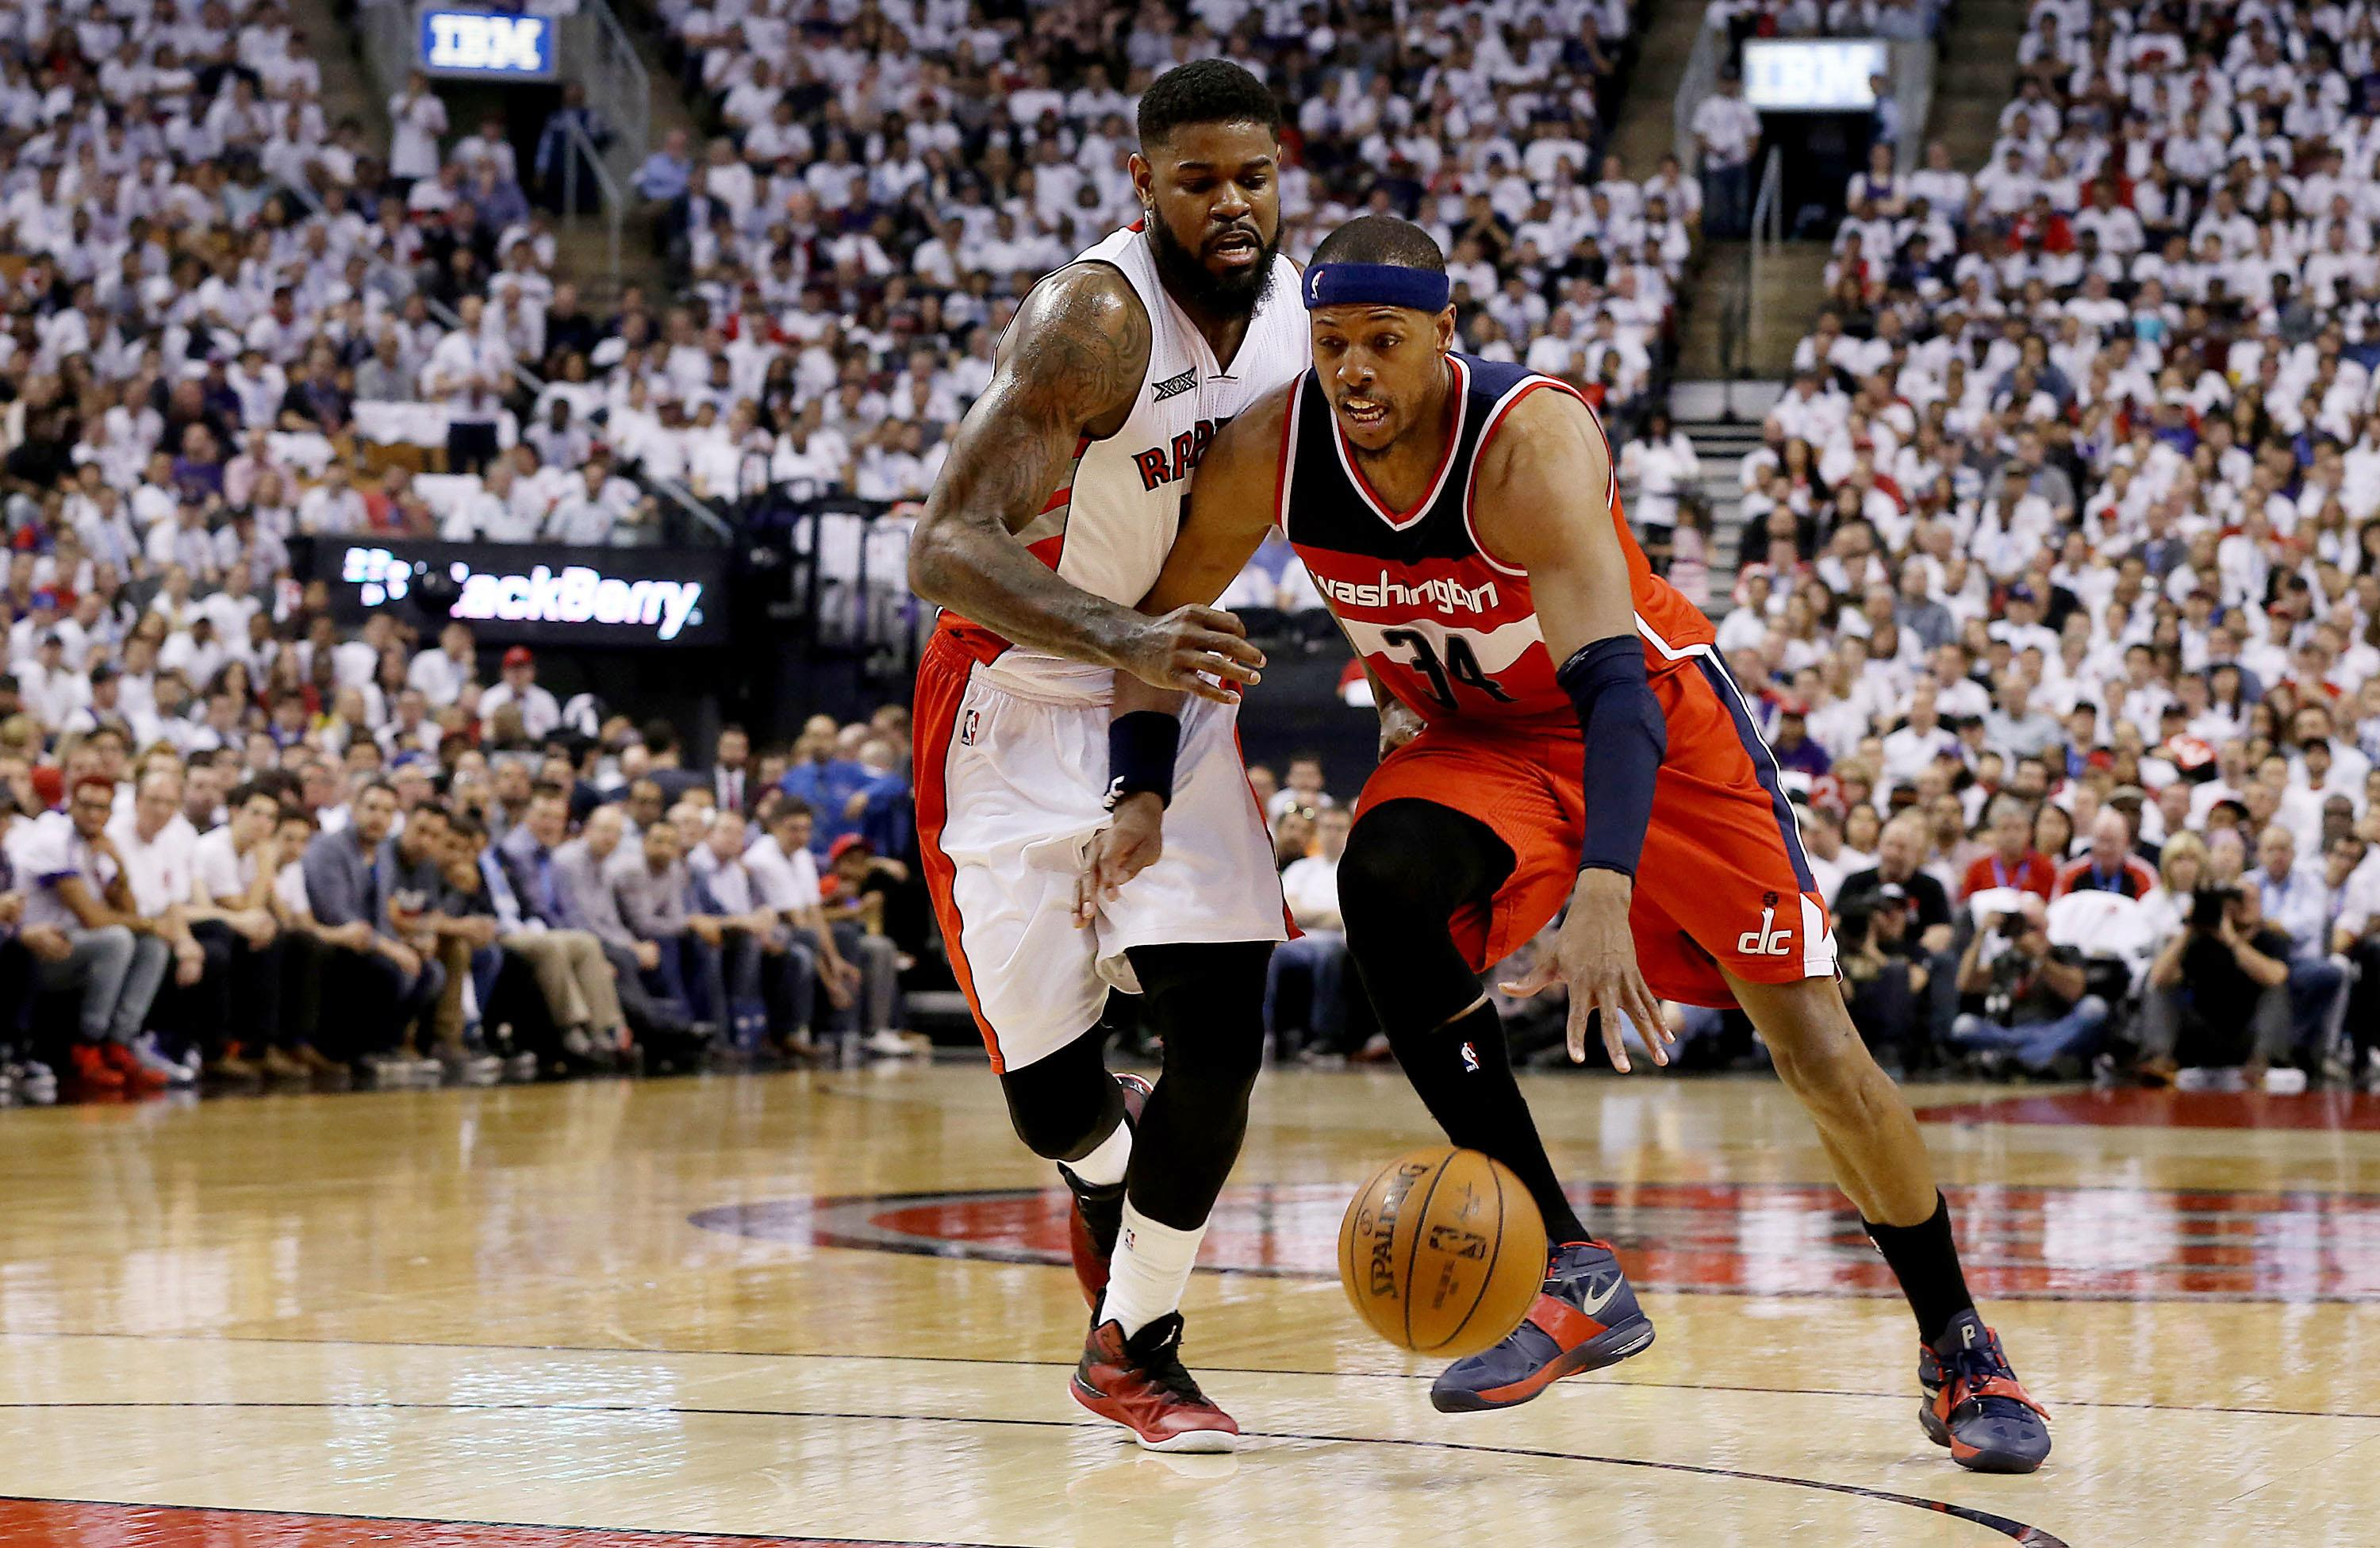 Wizards let Raptors back in, but win Game 1 in OT behind Paul Pierce